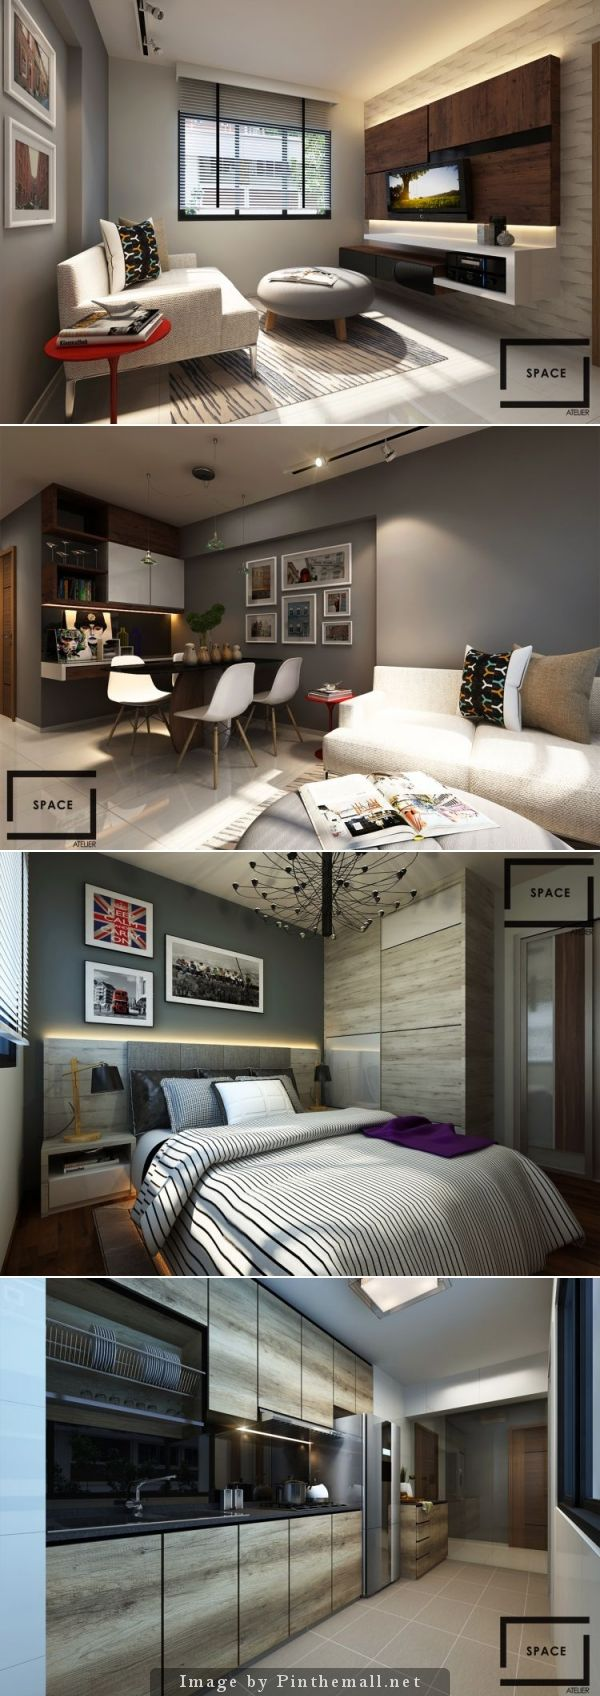 Singapore Hdb Living Room Design: HDB 2 Room By Space Atelier Pte Ltd